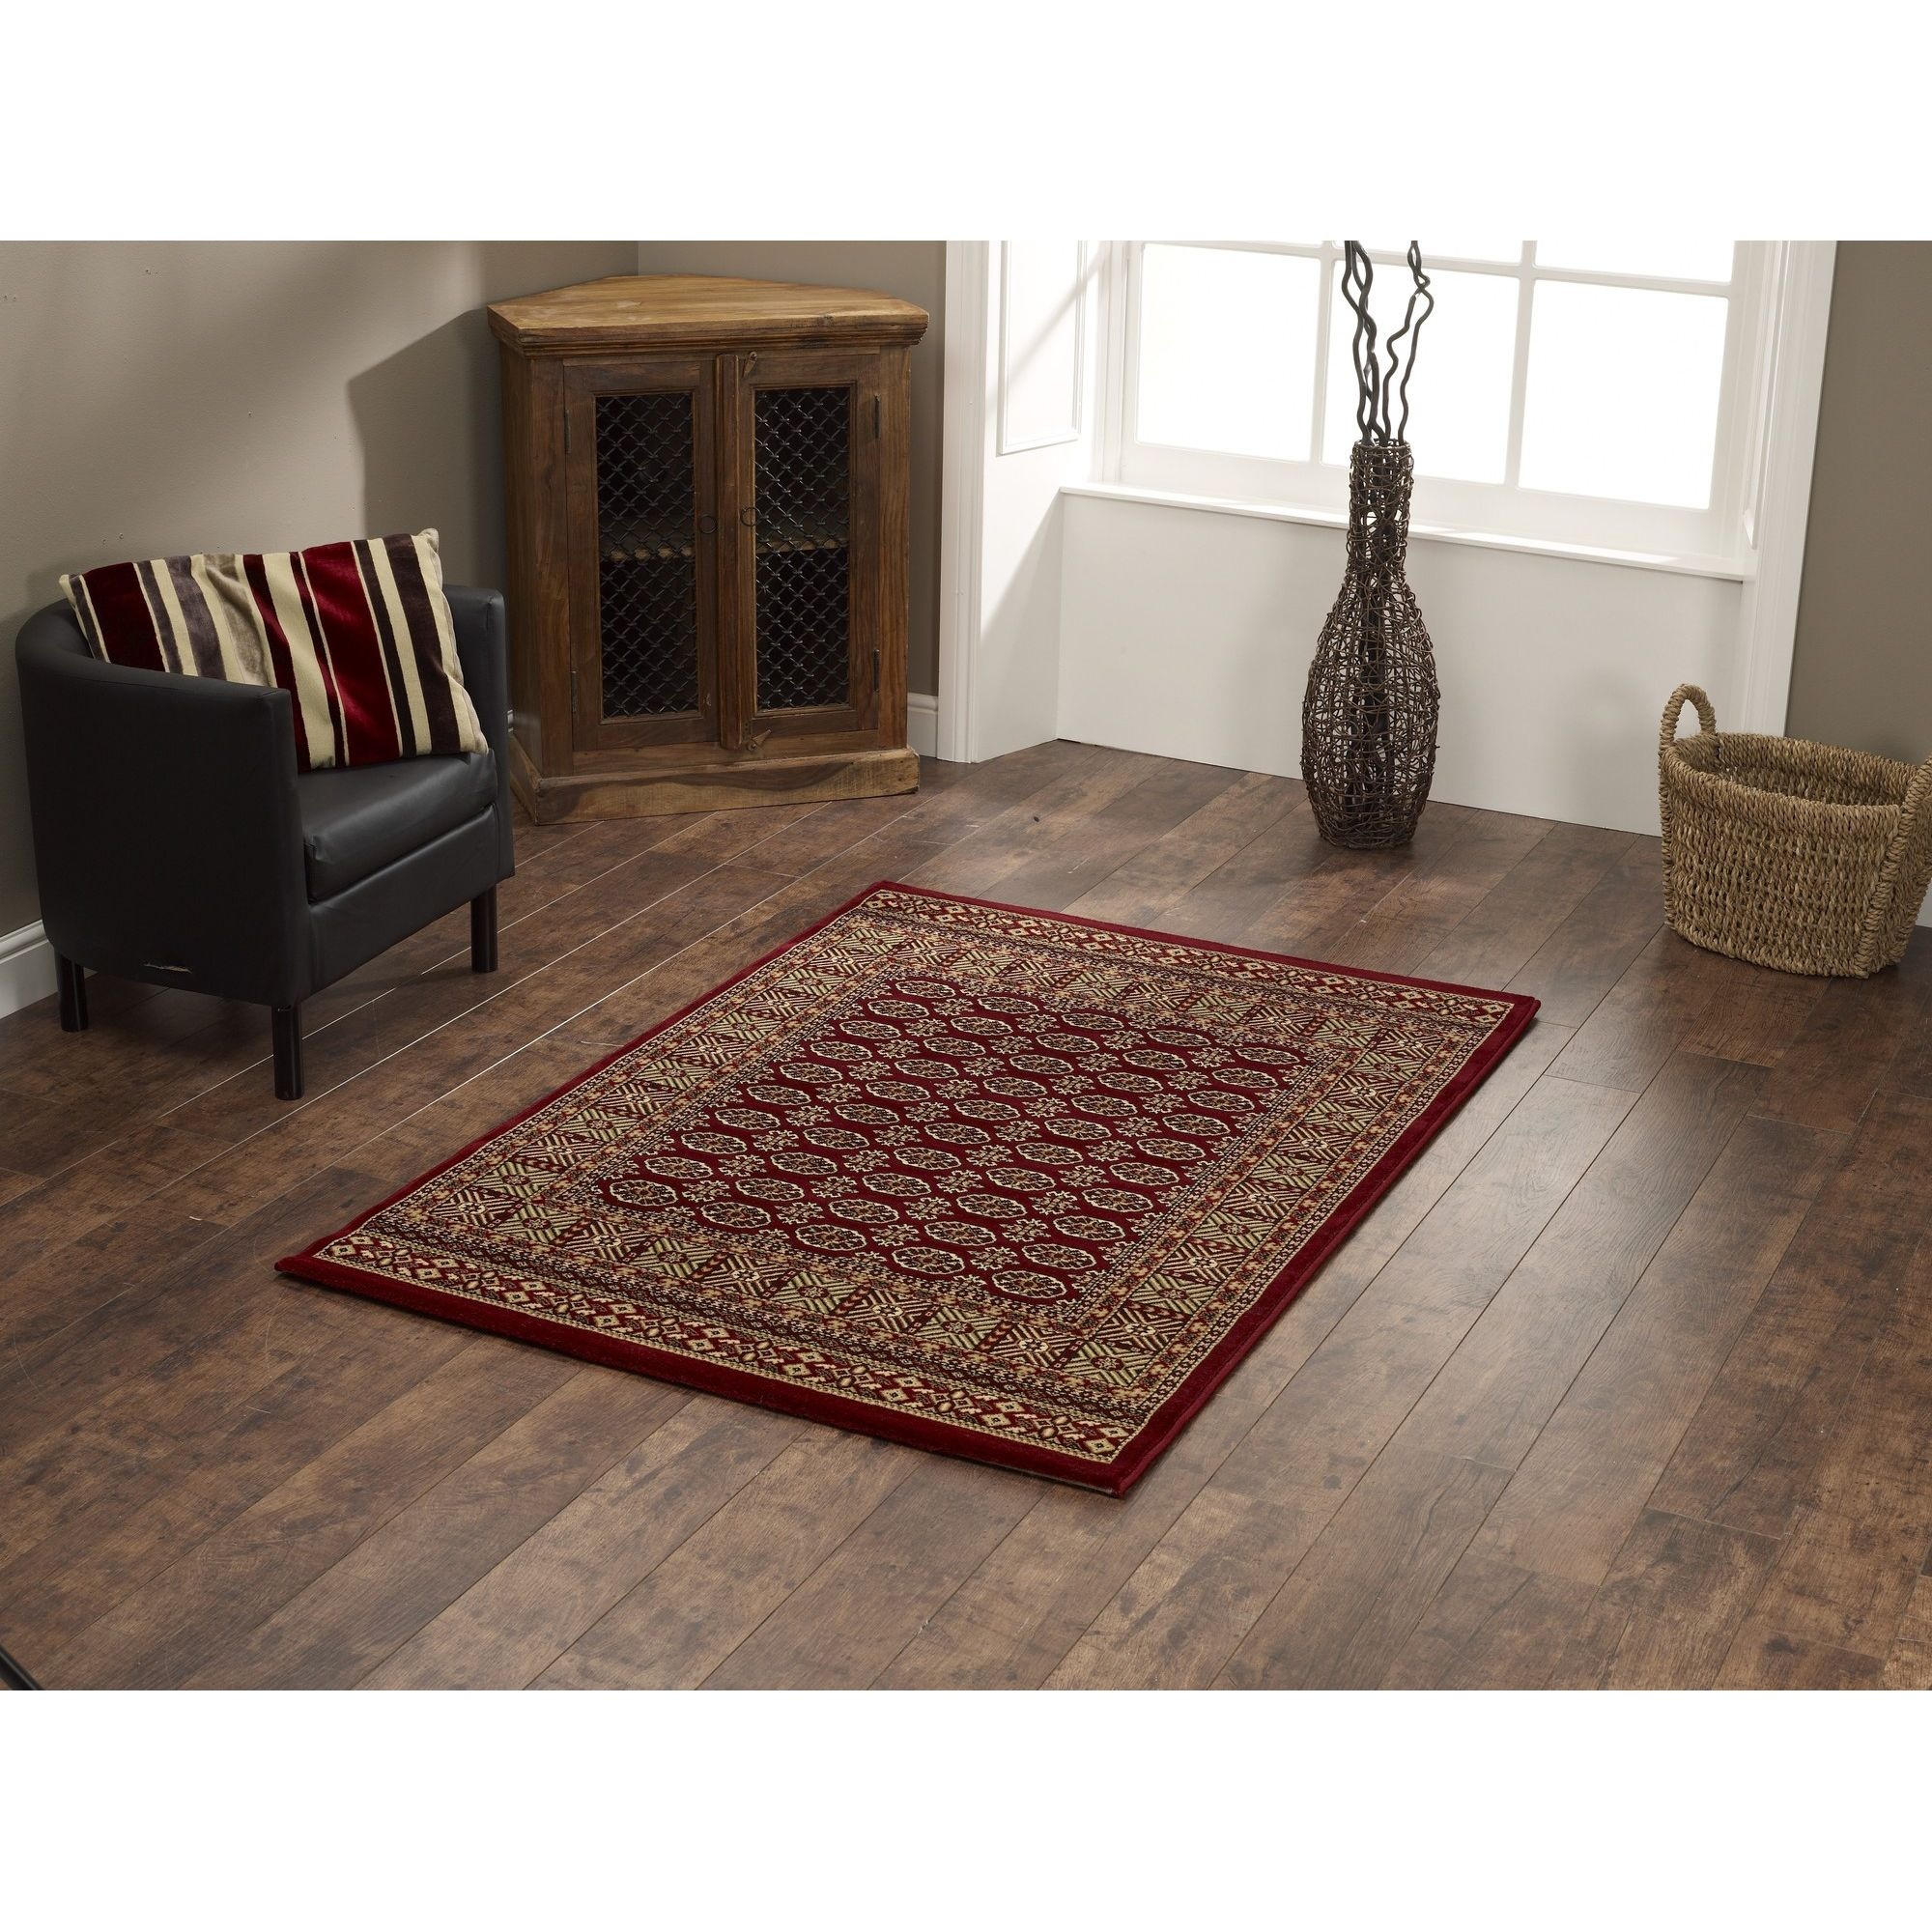 Oriental Carpets & Rugs Bokhara Red Rug - 340cm L x 240cm W at Tesco Direct